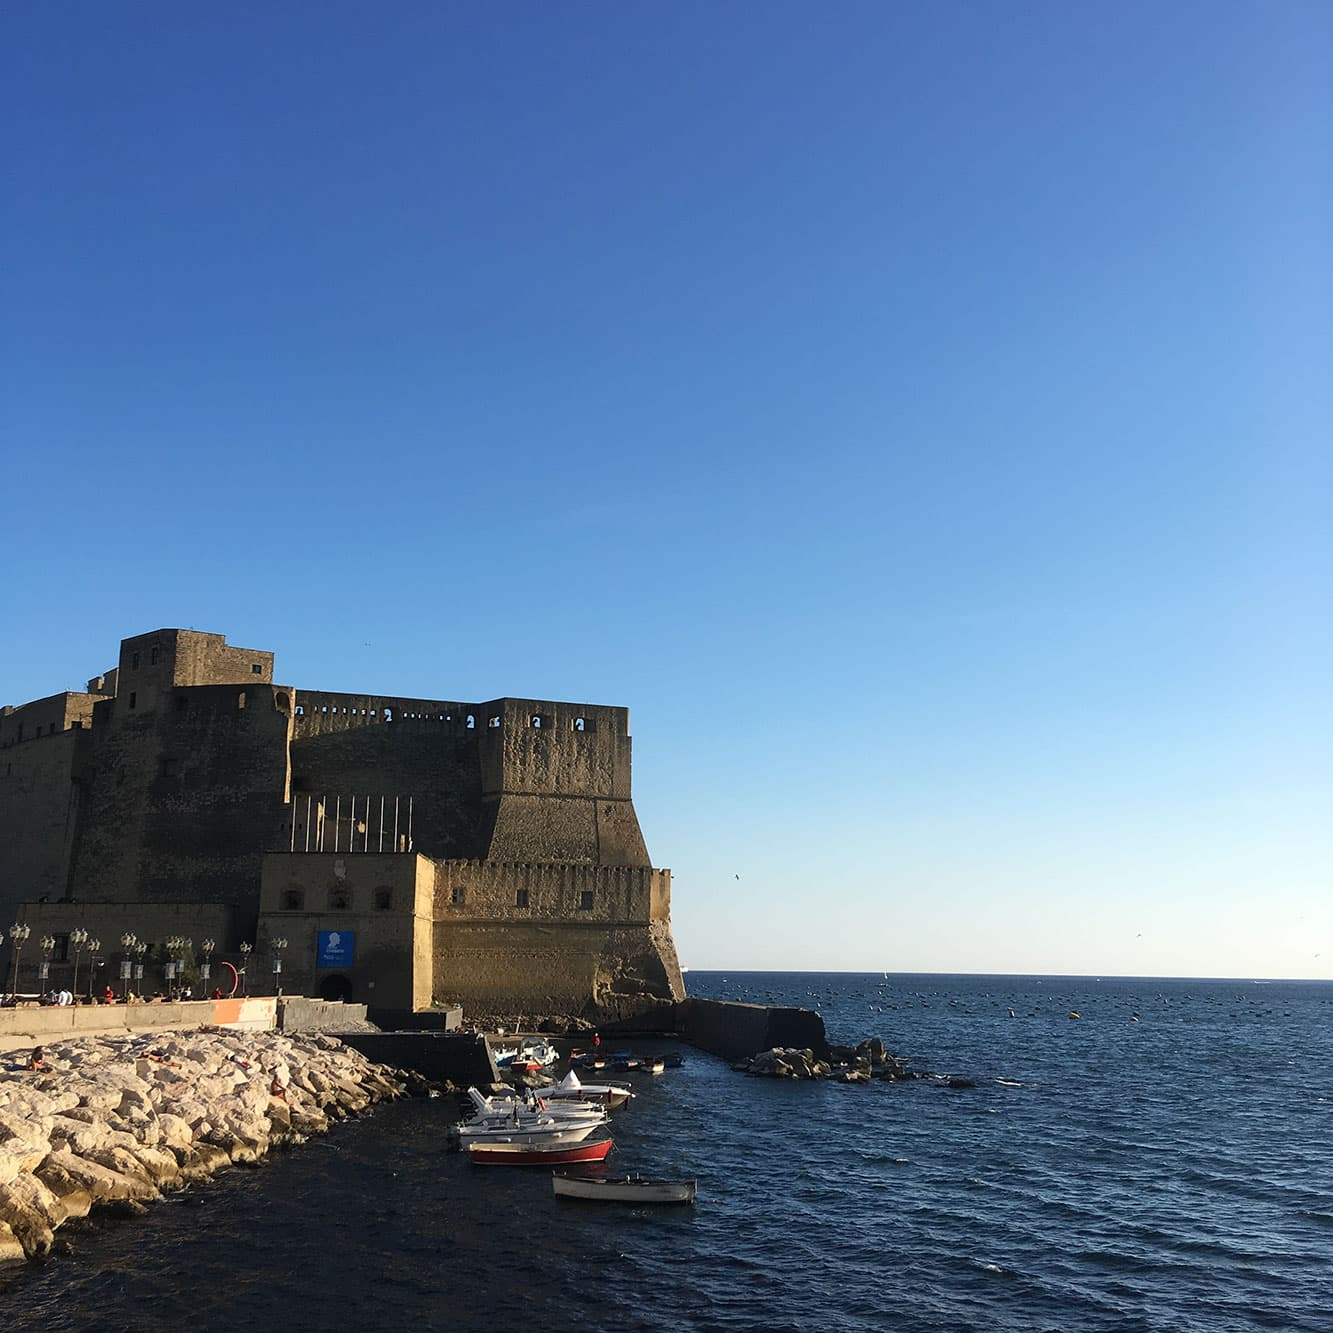 View of Castel dell'Ovo from Naples's Lungomare